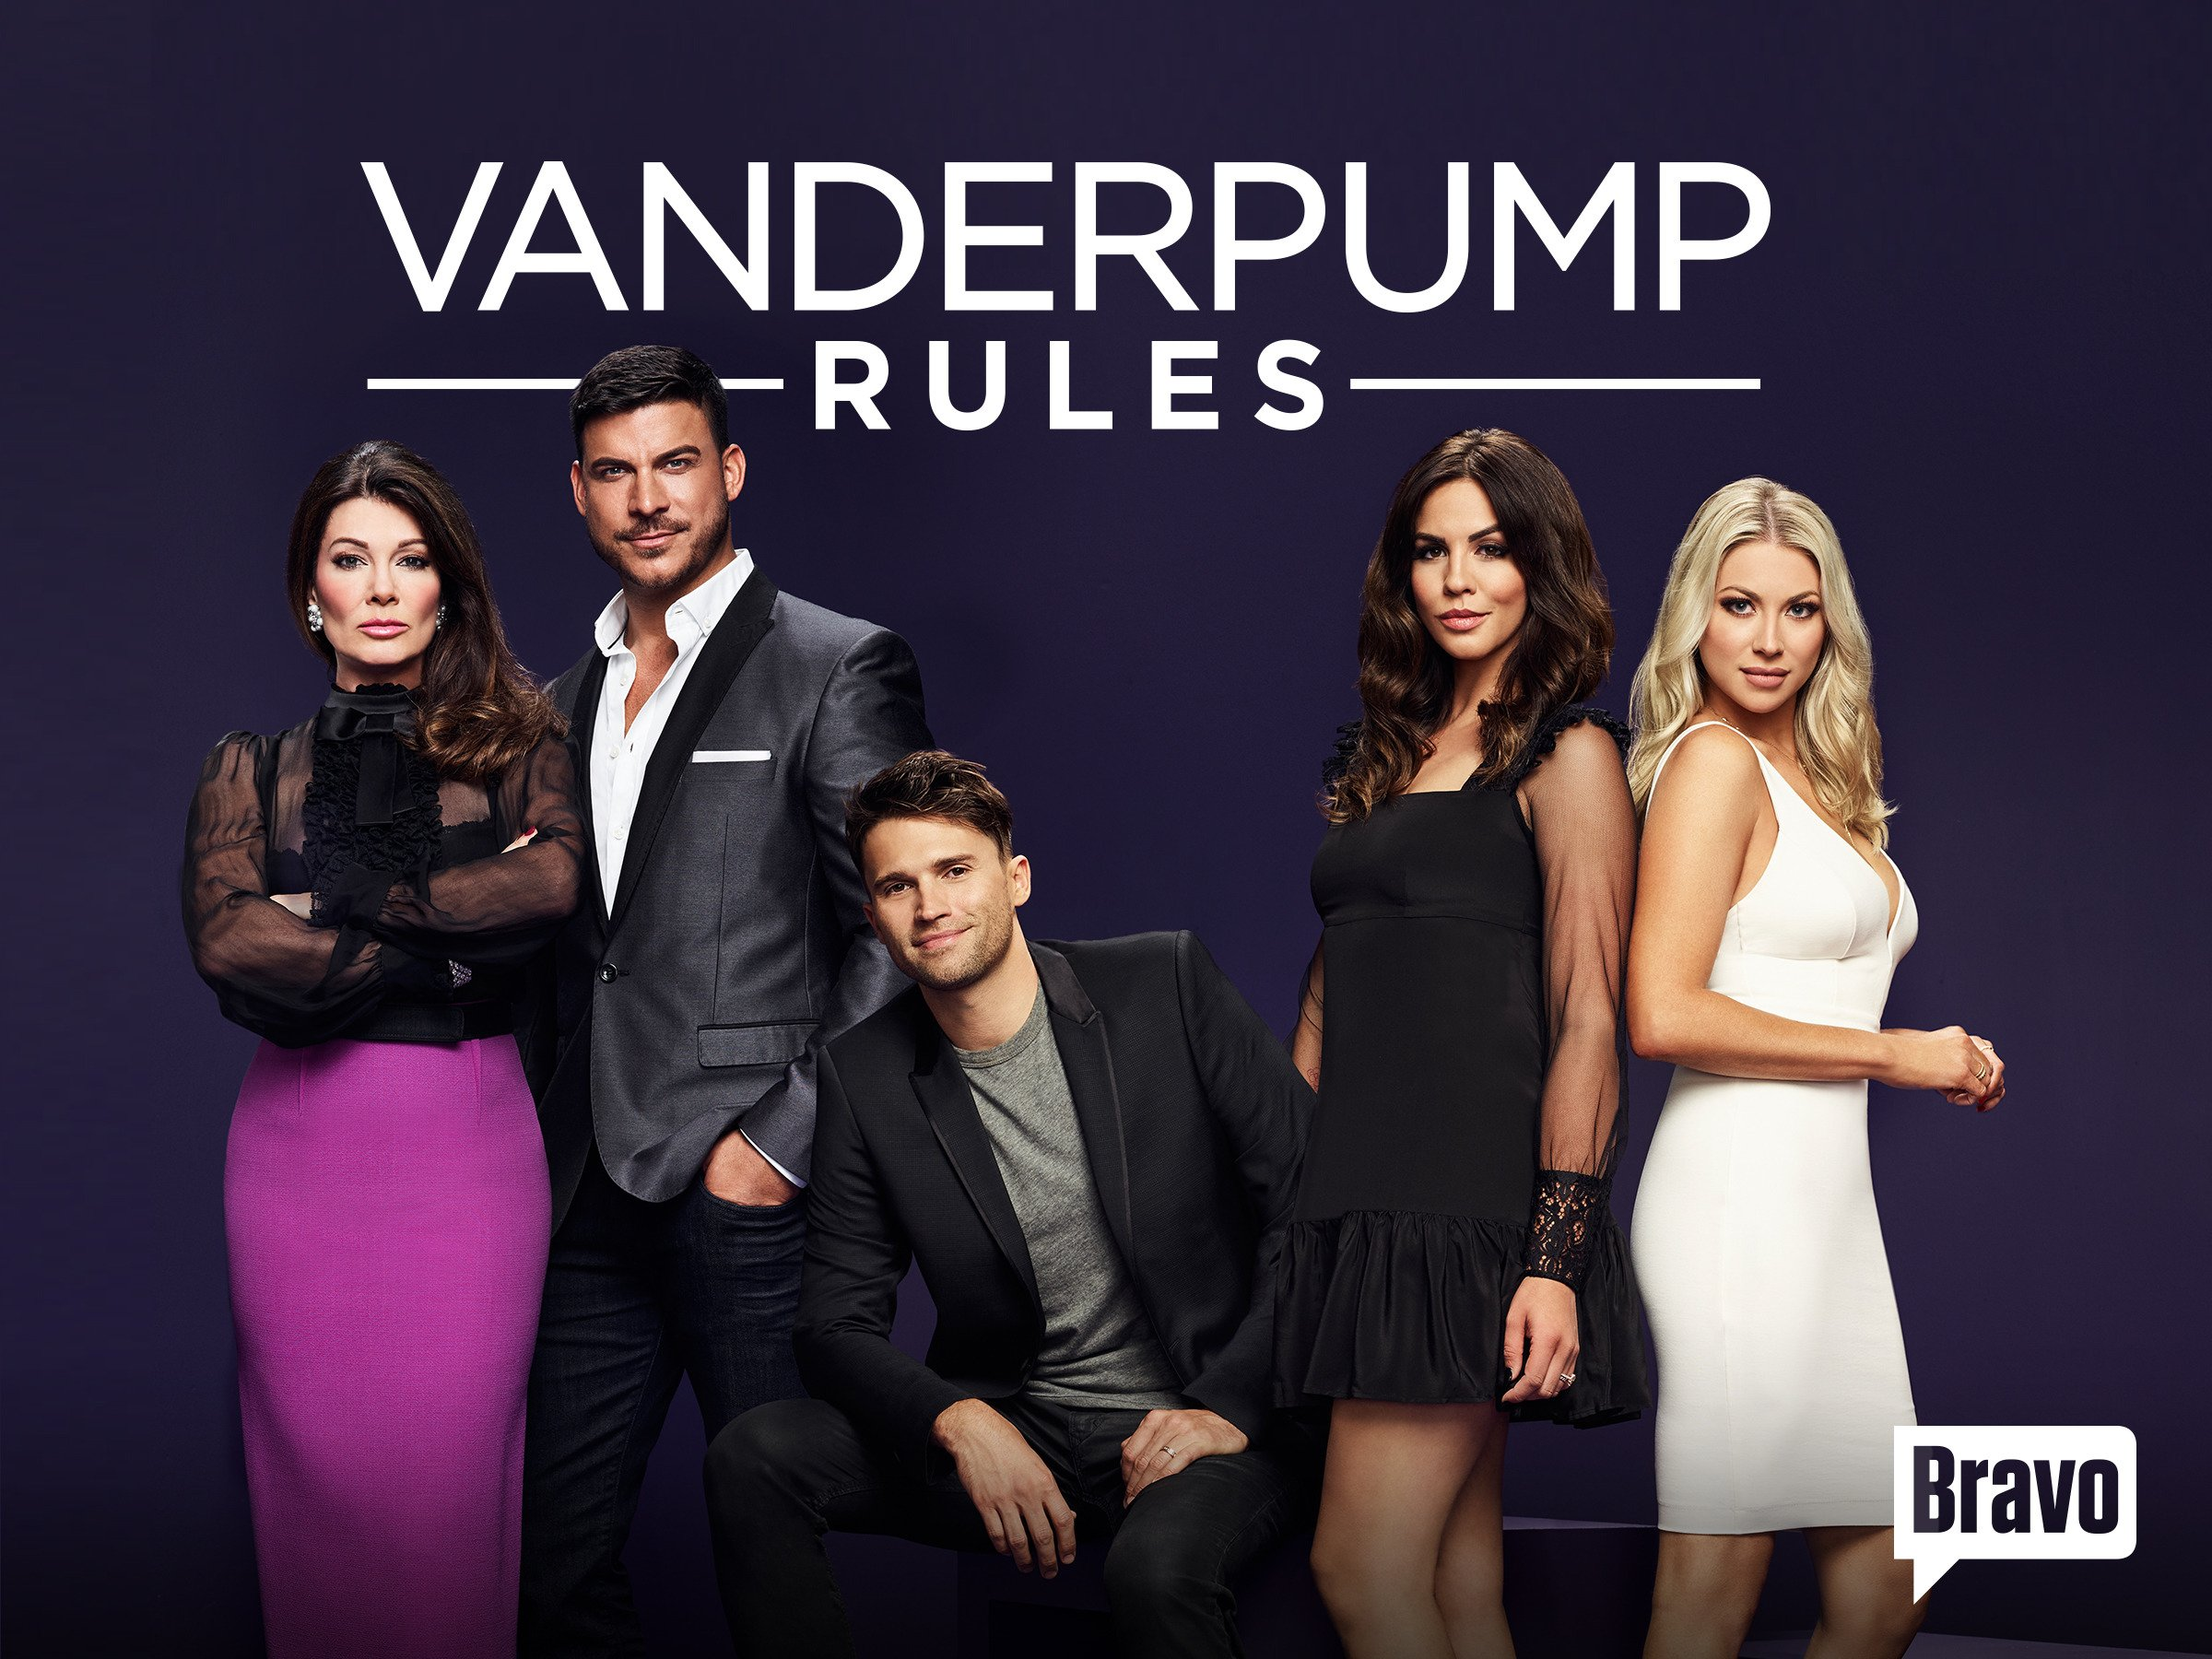 vanderpump rules s5e1